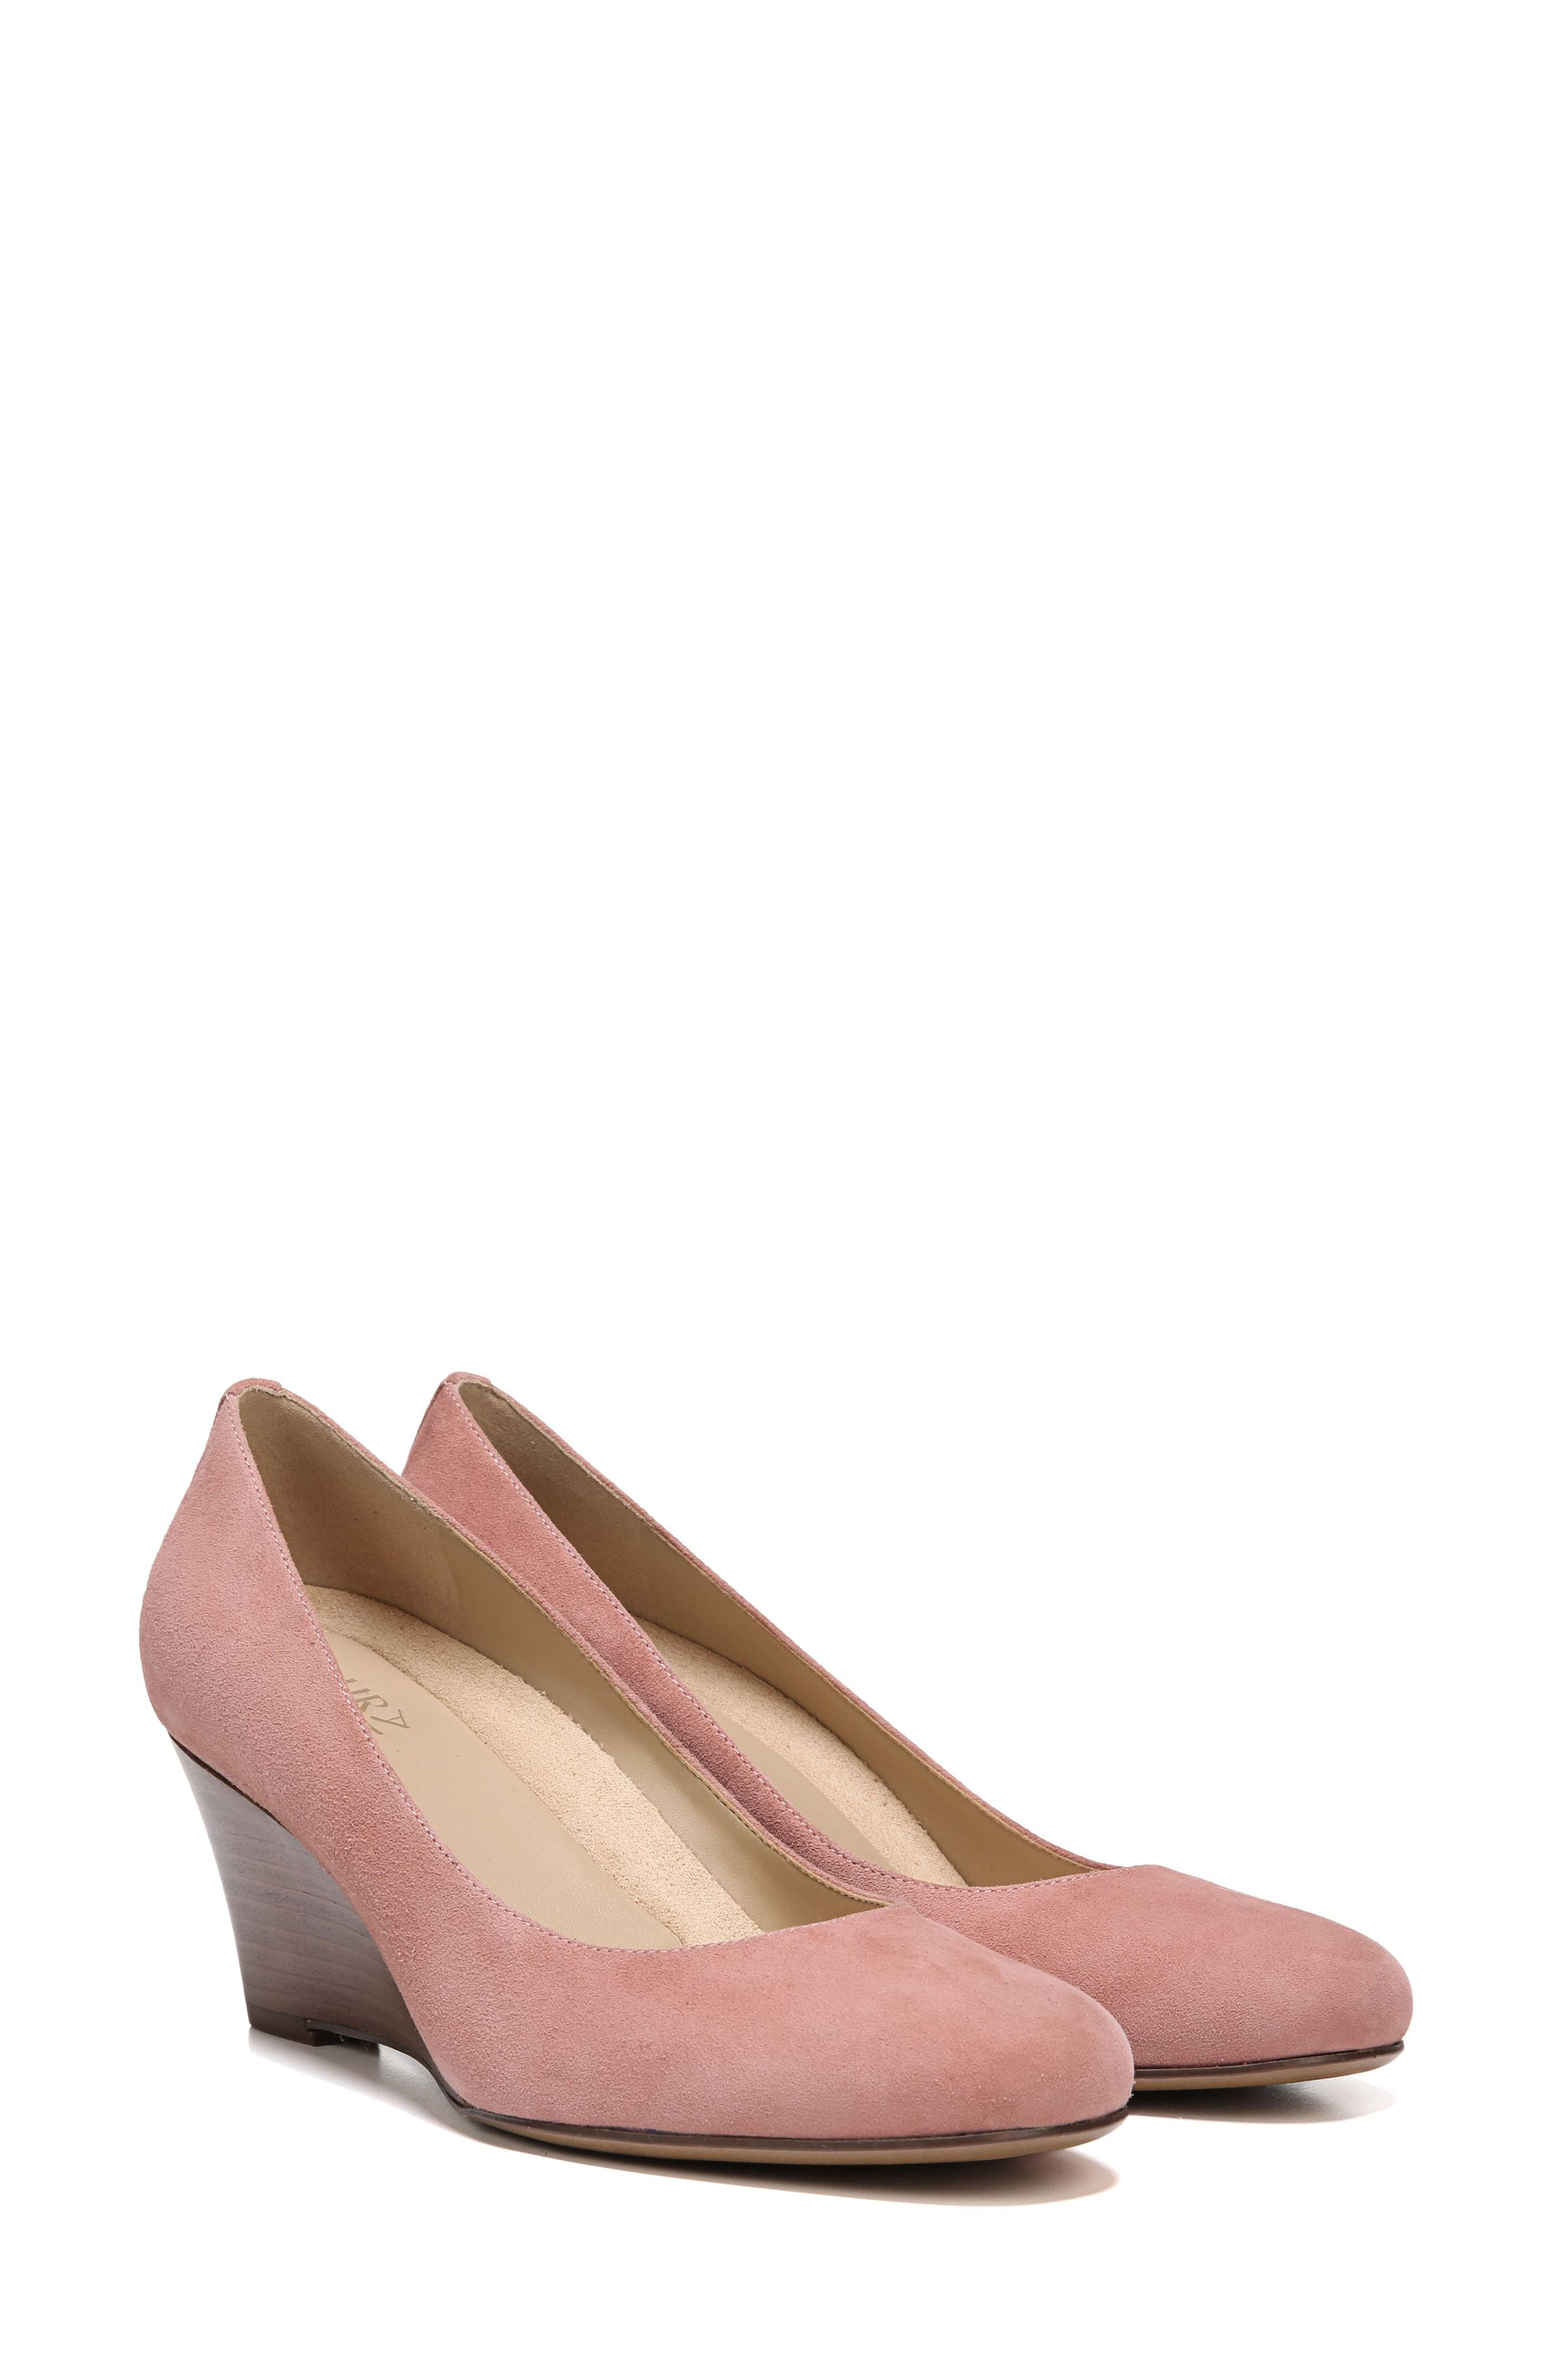 Emily Wedge Pump,                             Alternate thumbnail 9, color,                             Peony Pink Suede